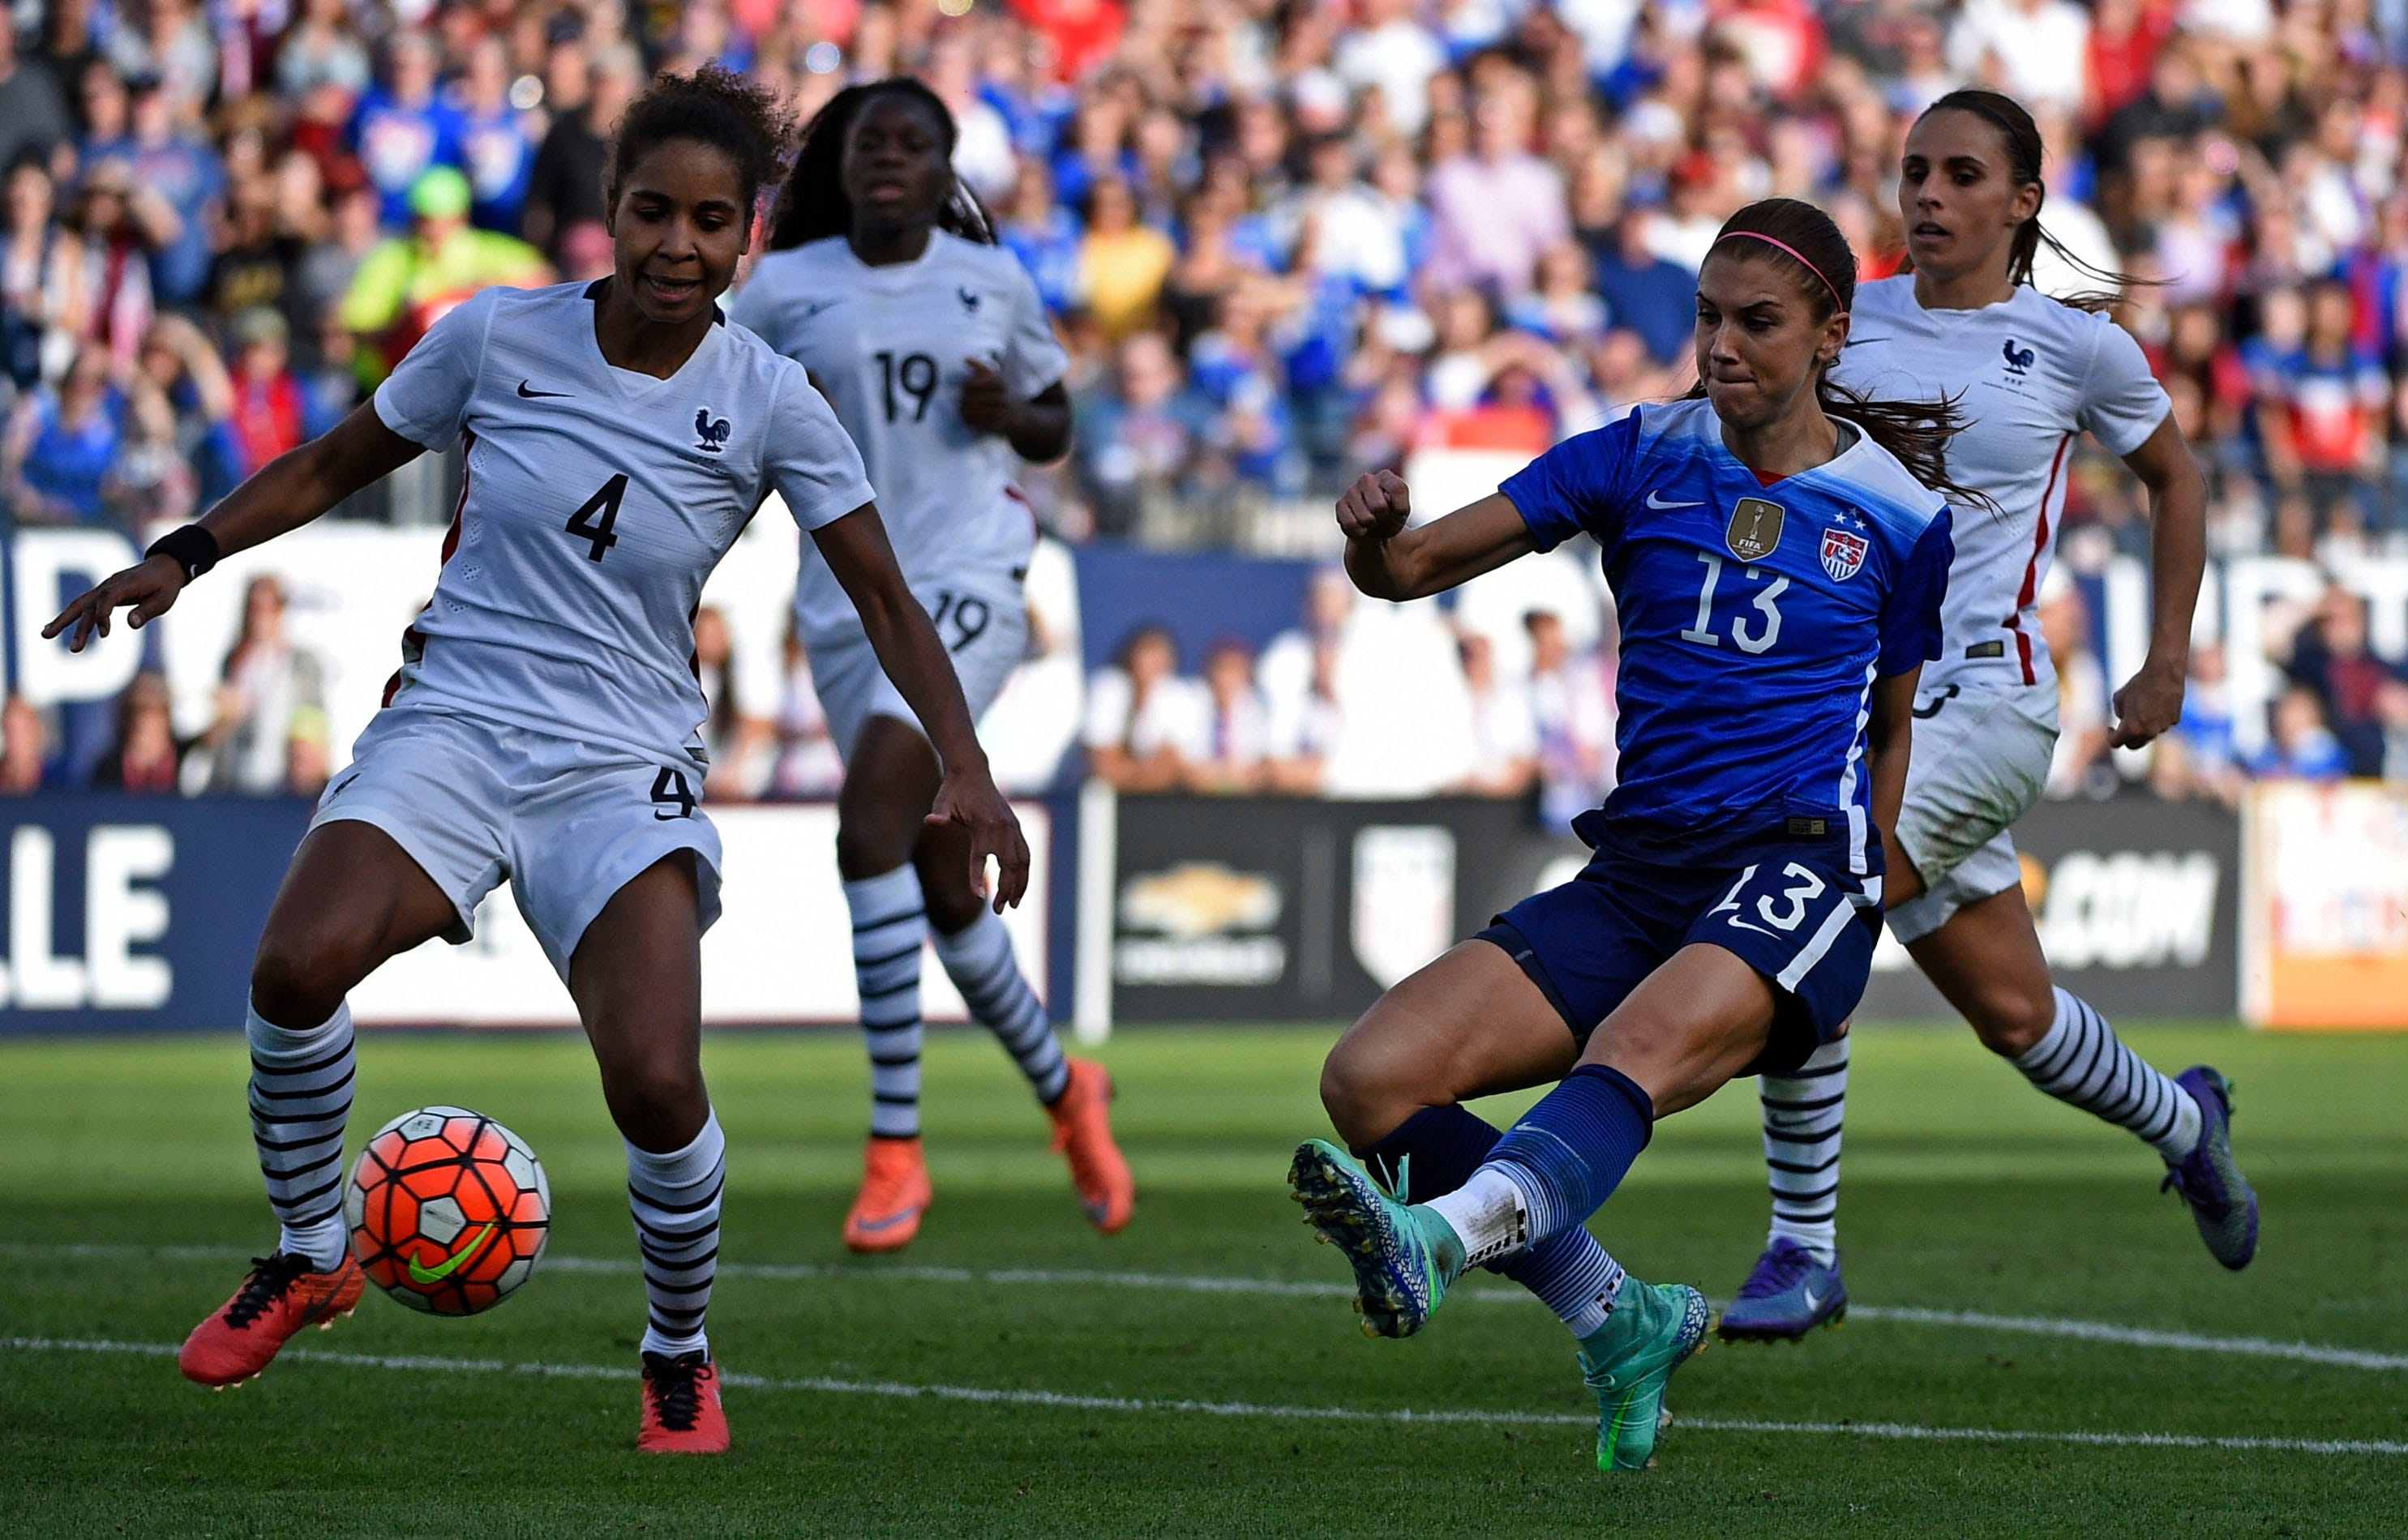 USA's Alex Morgan, 13, scores the winning goal during